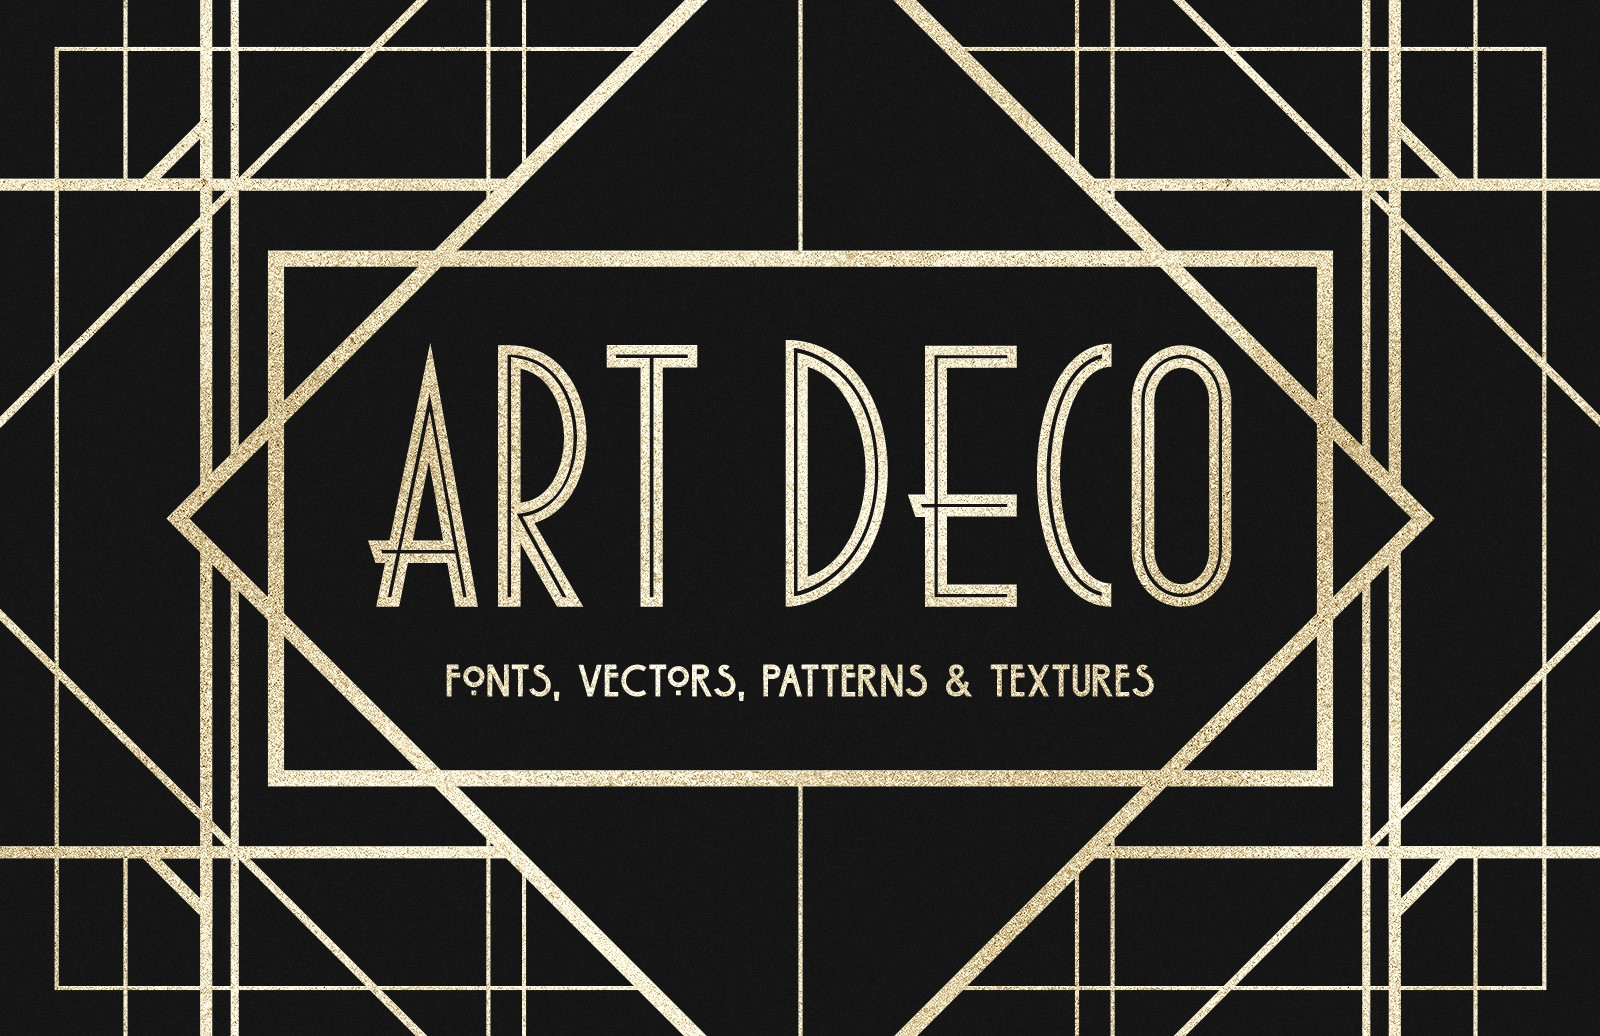 The art deco collection medialoot for Design art deco